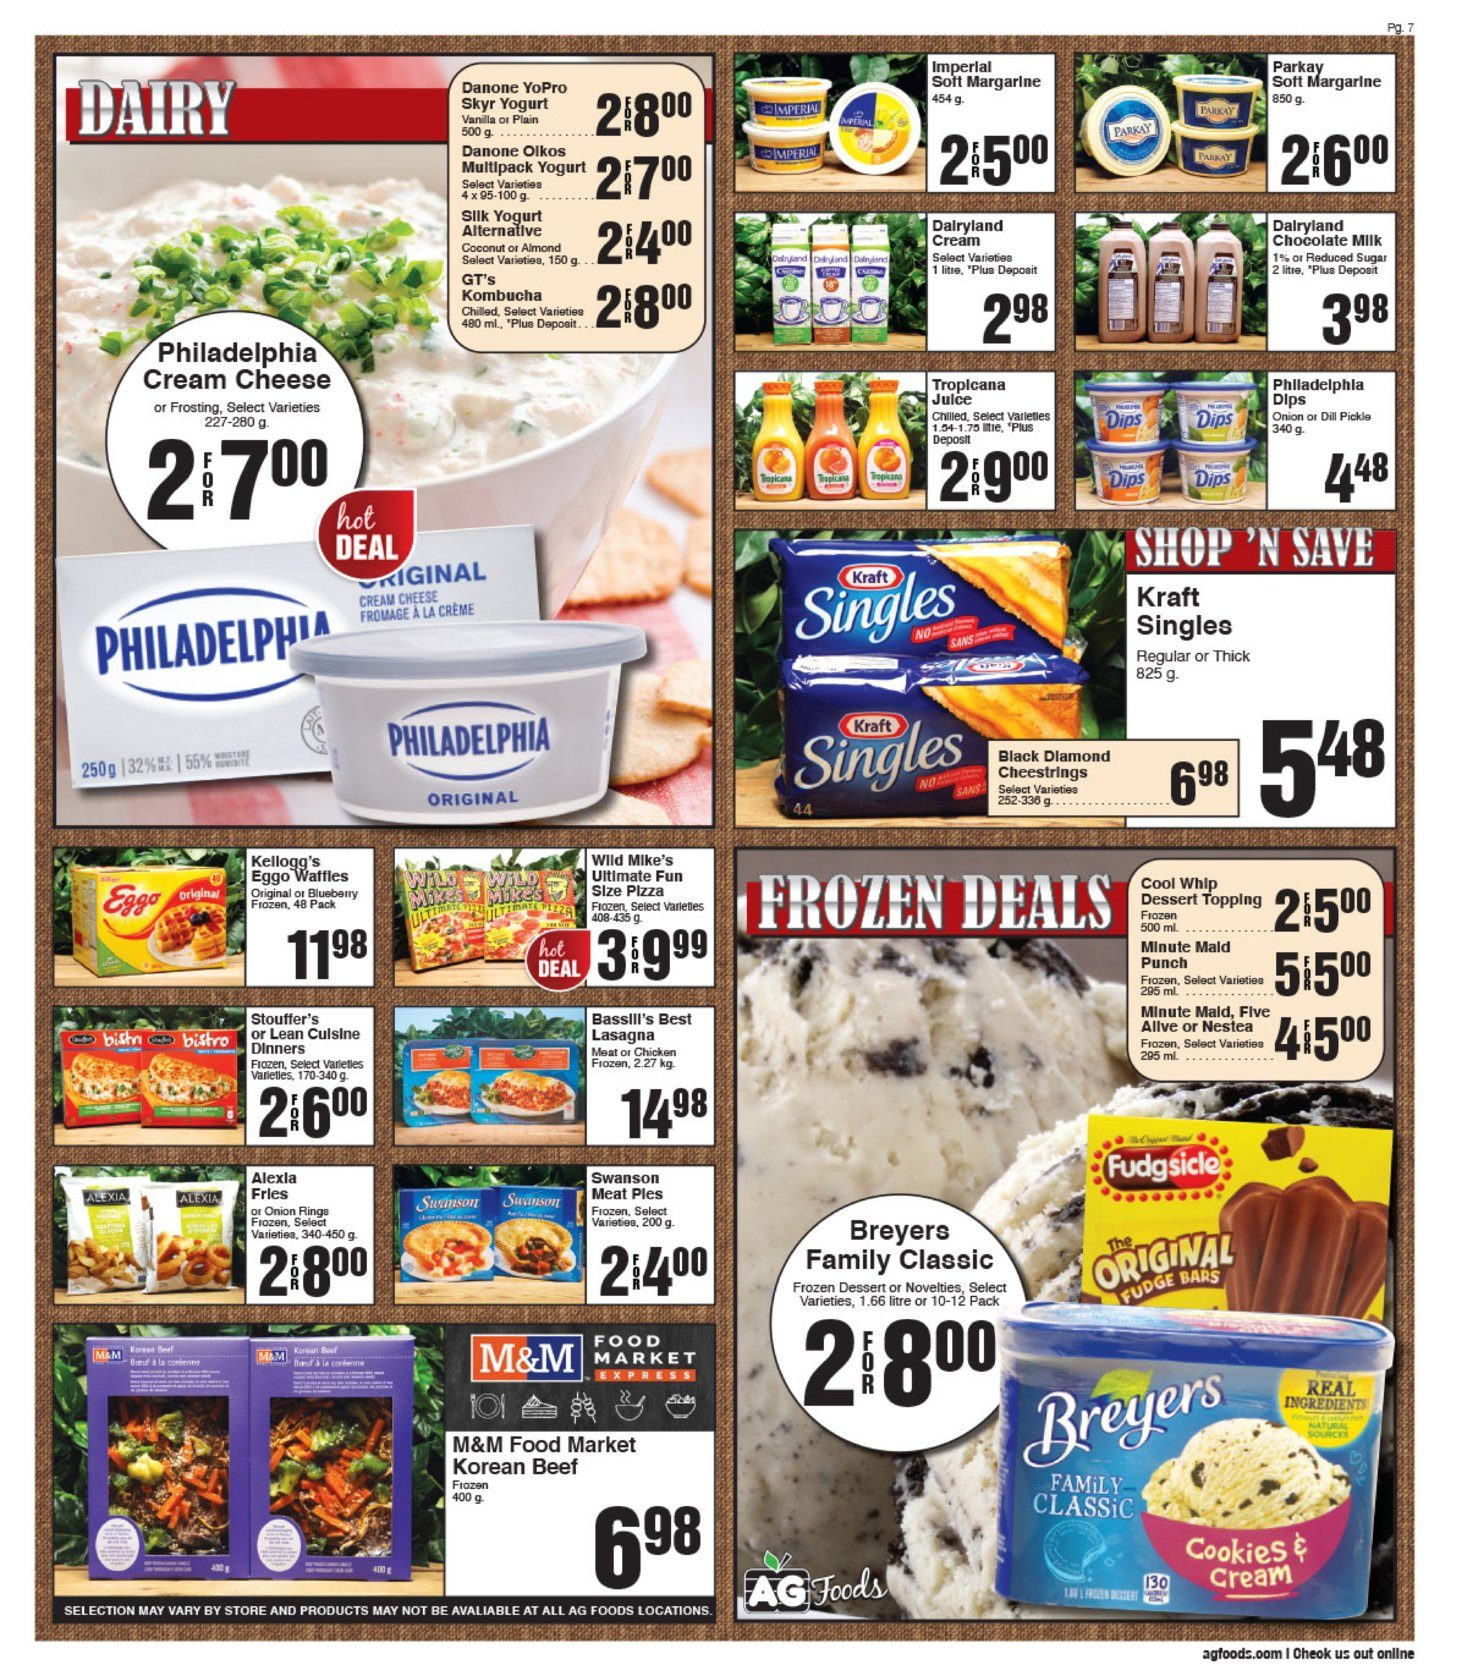 AG Foods - Weekly Flyer Specials - Page 7